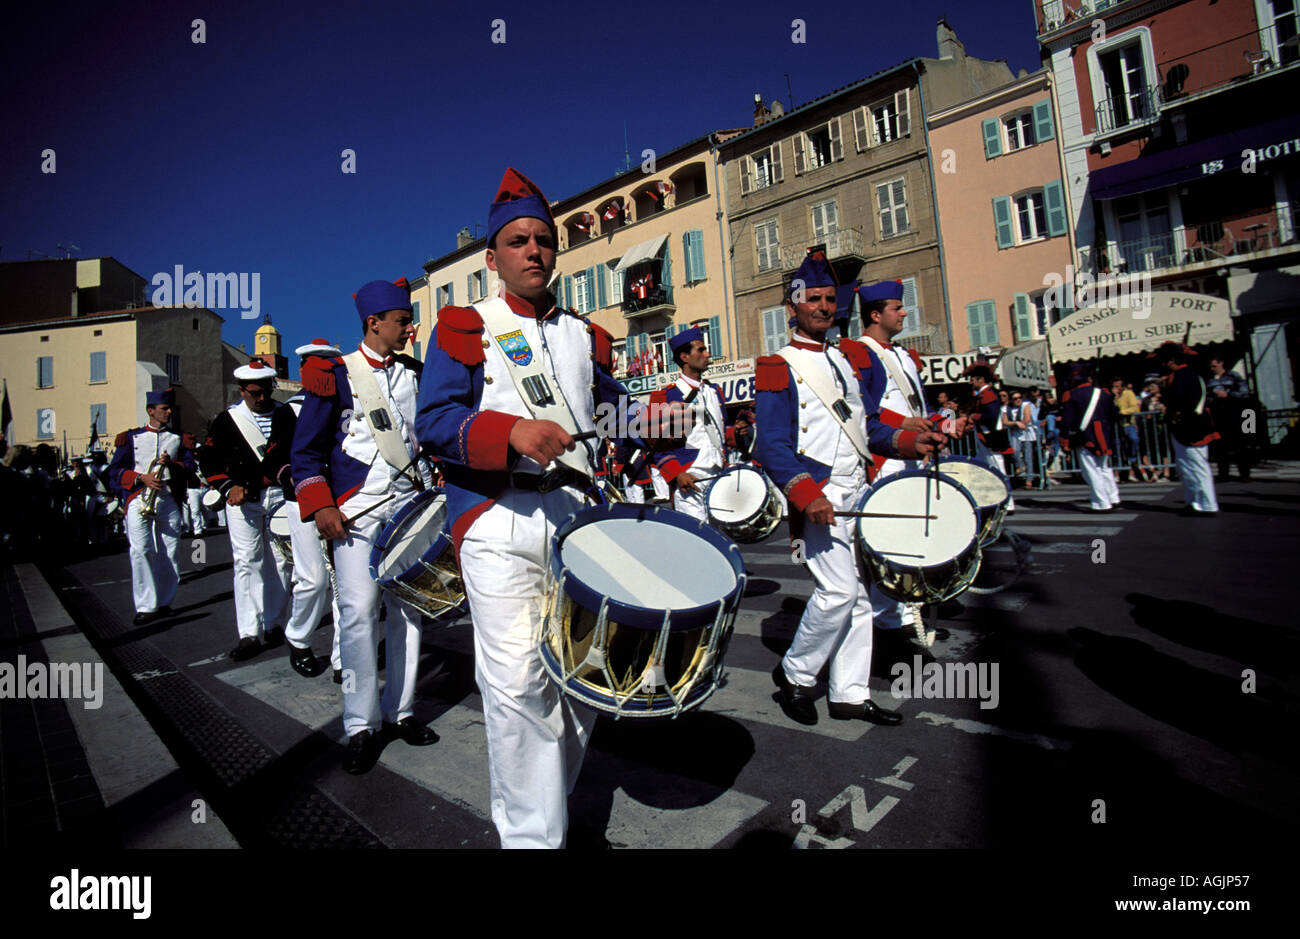 The Bravade of Saint Tropez a music band is part of the Patron Saint celebrations - Stock Image